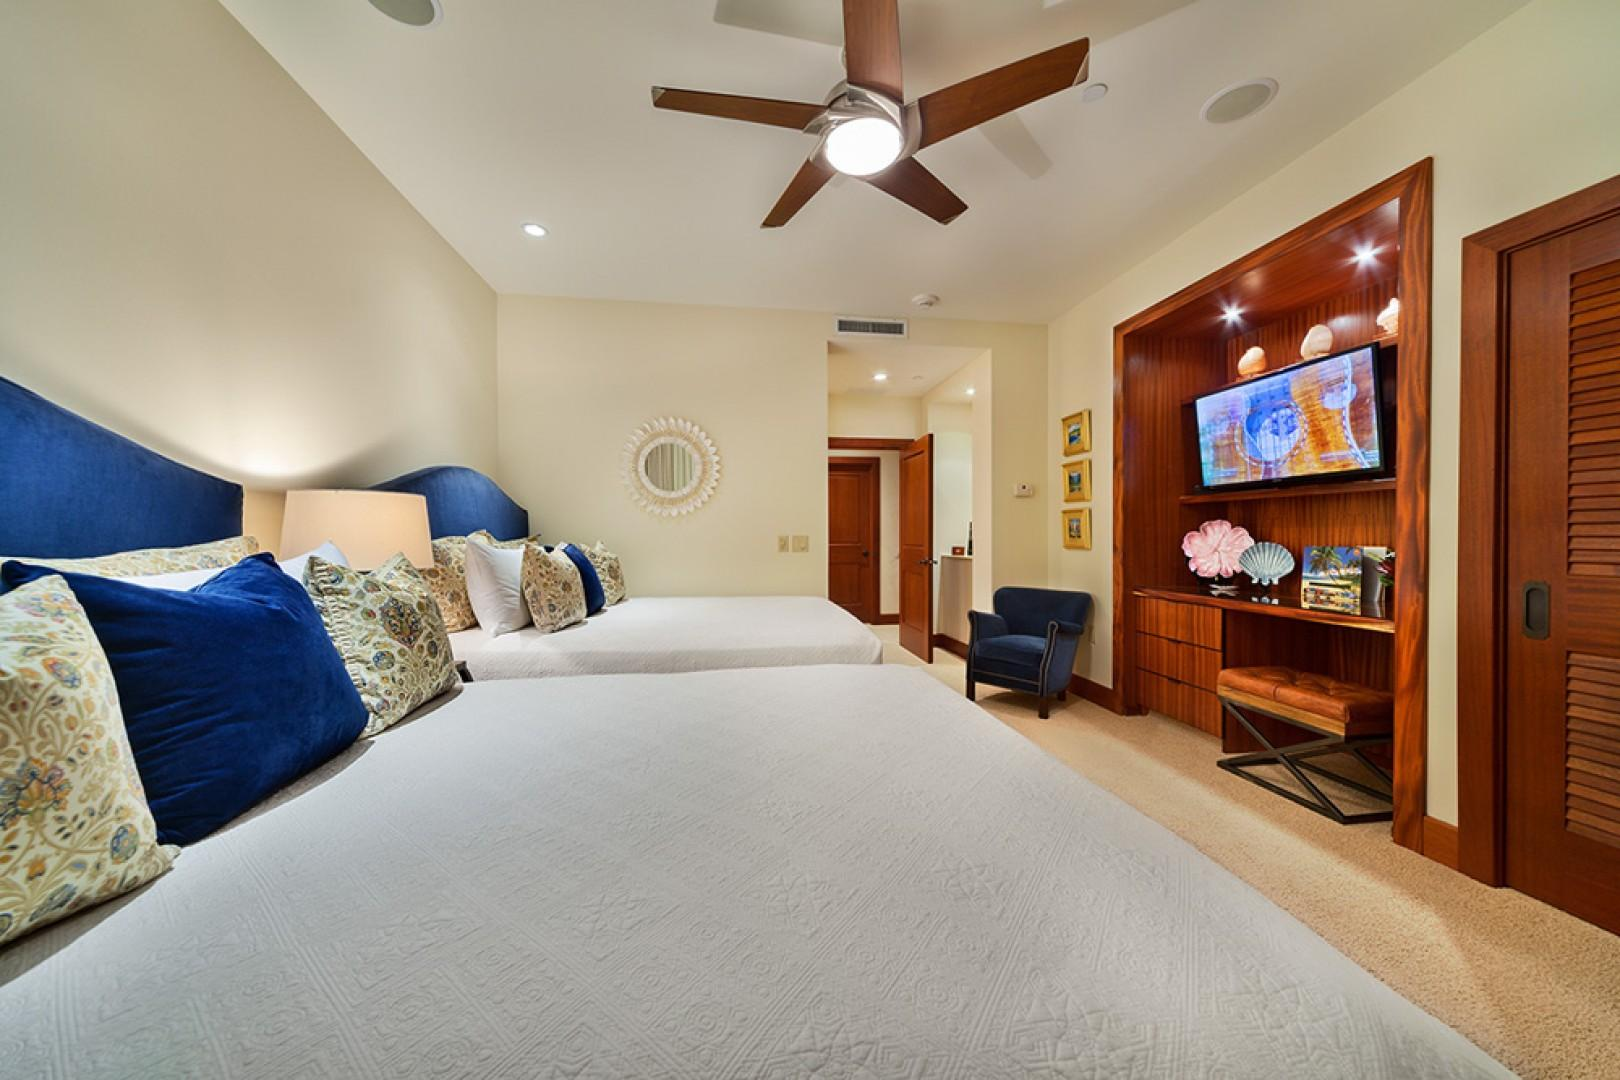 A201 Royal Ilima - The Third Bedroom Suite with Two Queen Beds with Indigo Velvet Headboards, Samsung TV/DVD, Desk, Velvet and Leather Seating, Original Oils by Betty Hay Freeland Maui Artist, Outdoor Veranda and Direct Access to an Emergency Exit, and Pr